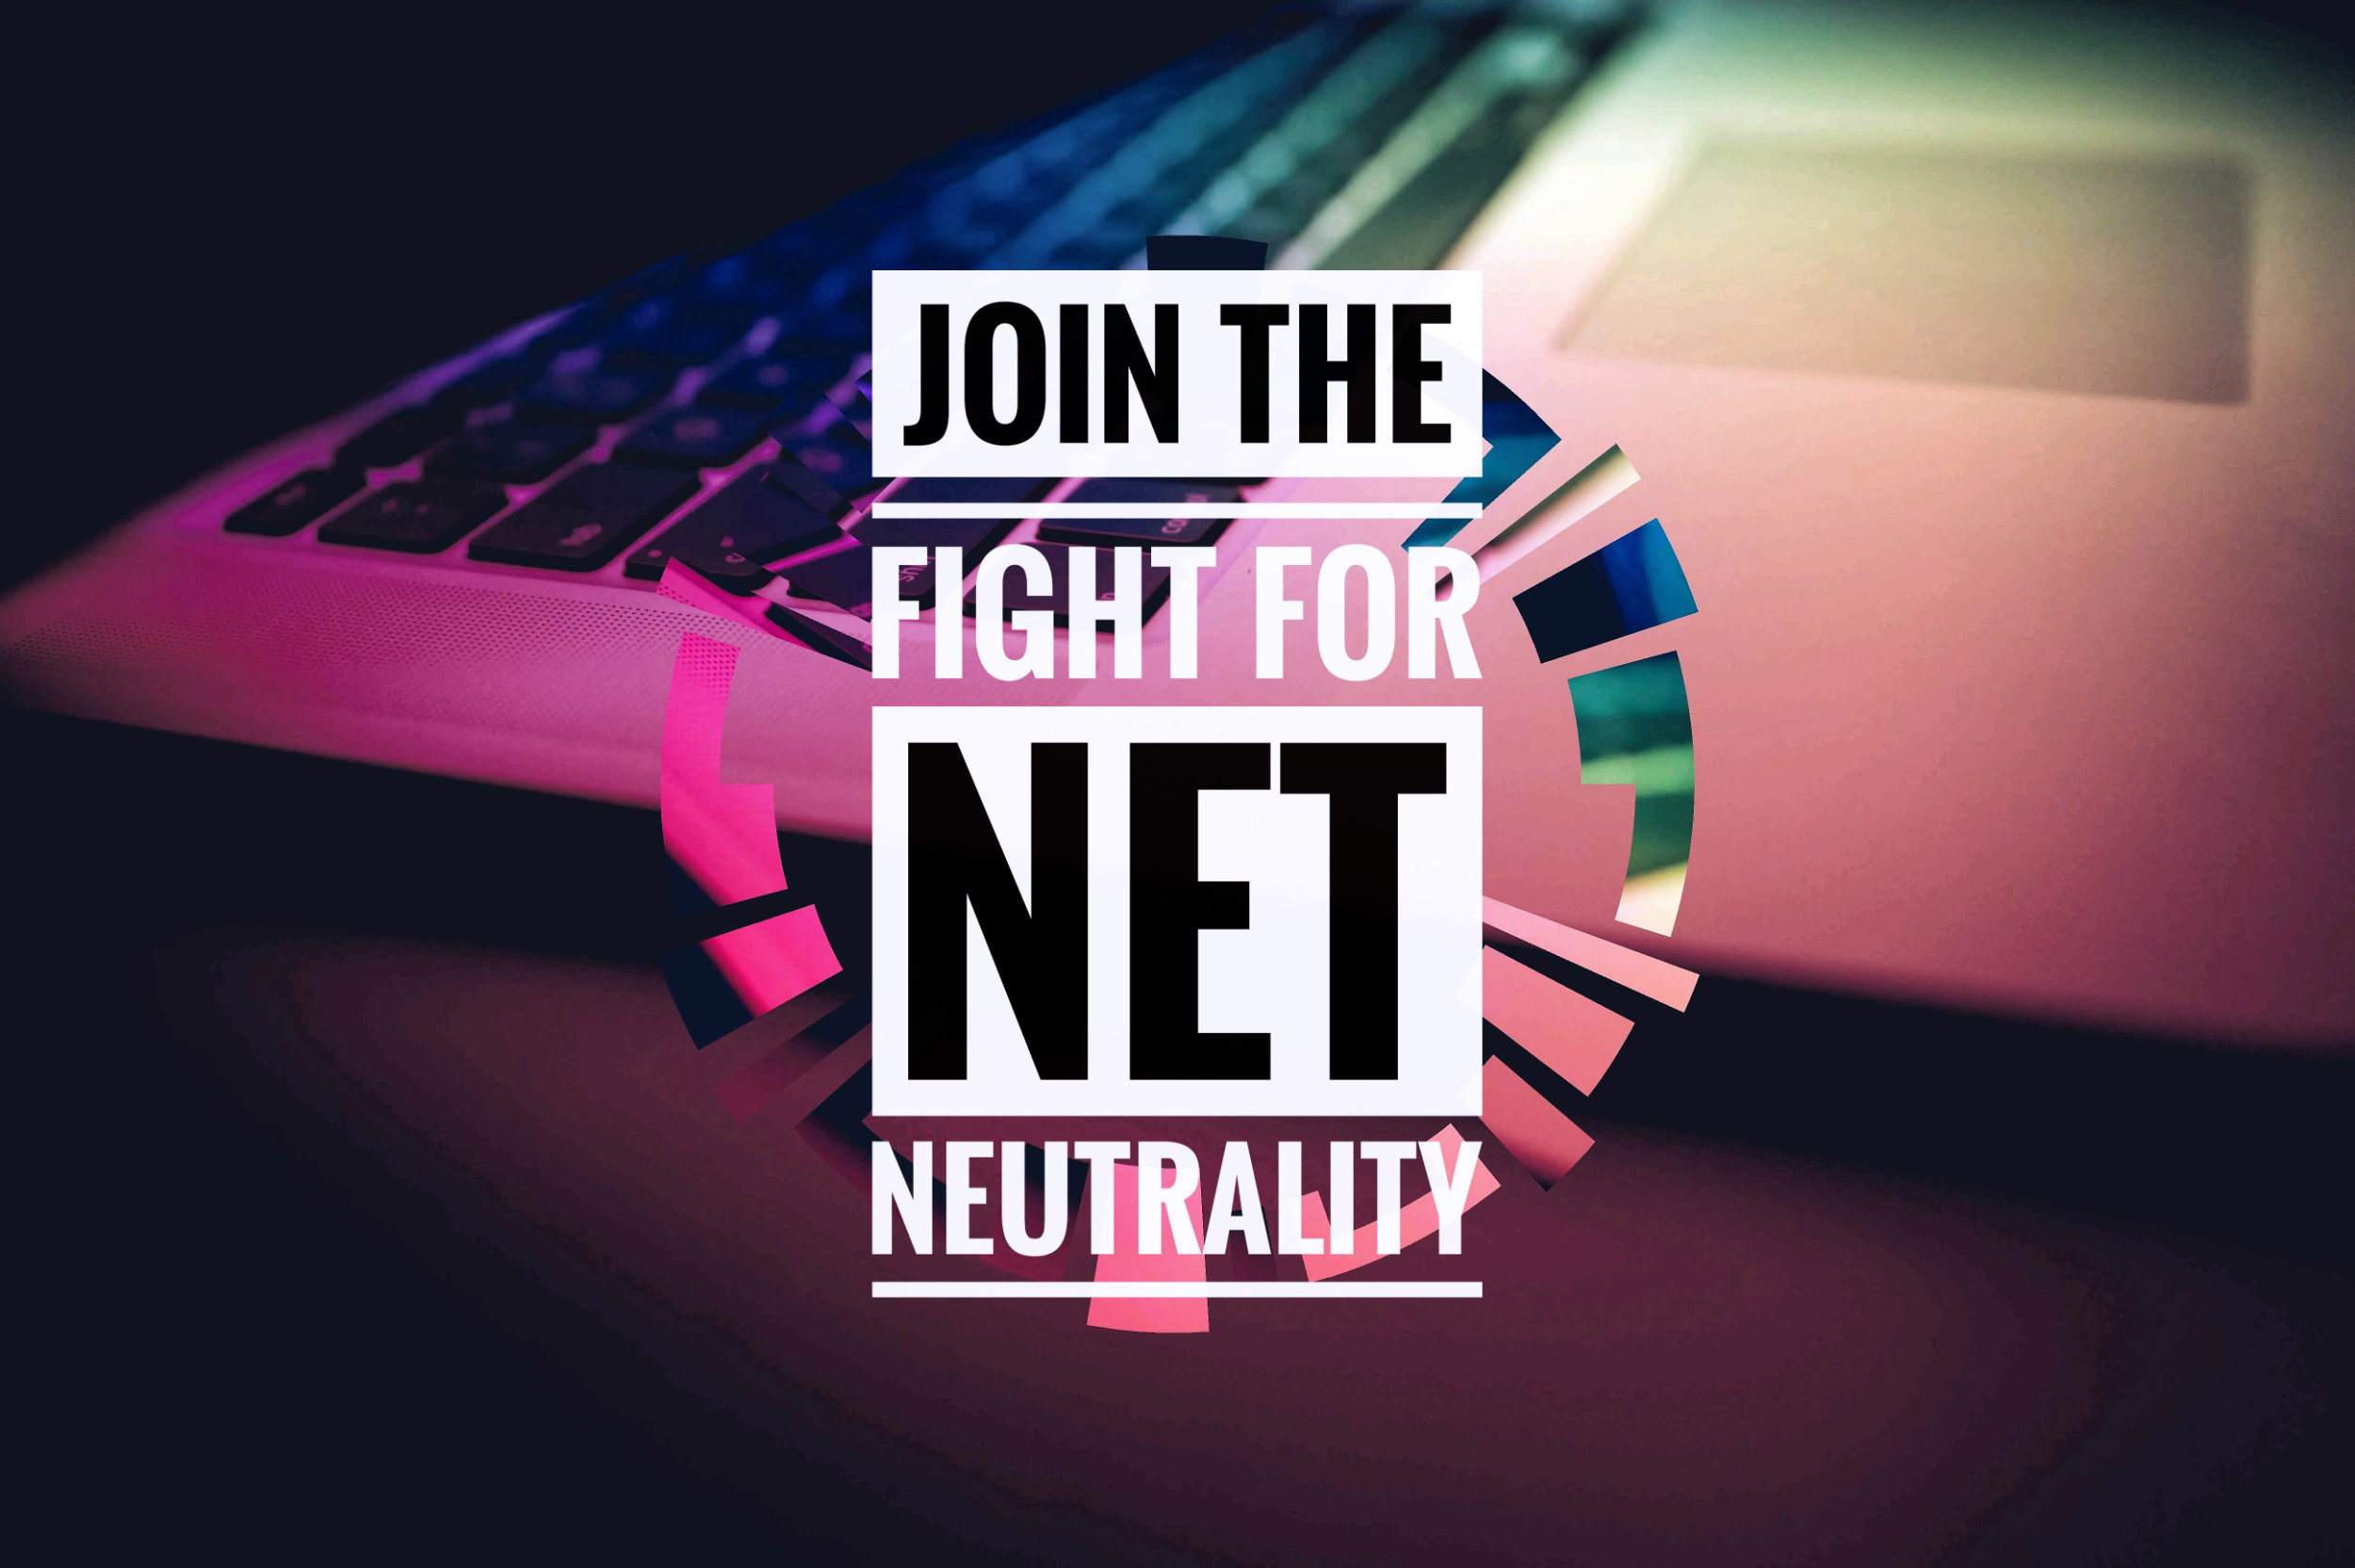 July 12th : Join the battle for Net Neutrality!